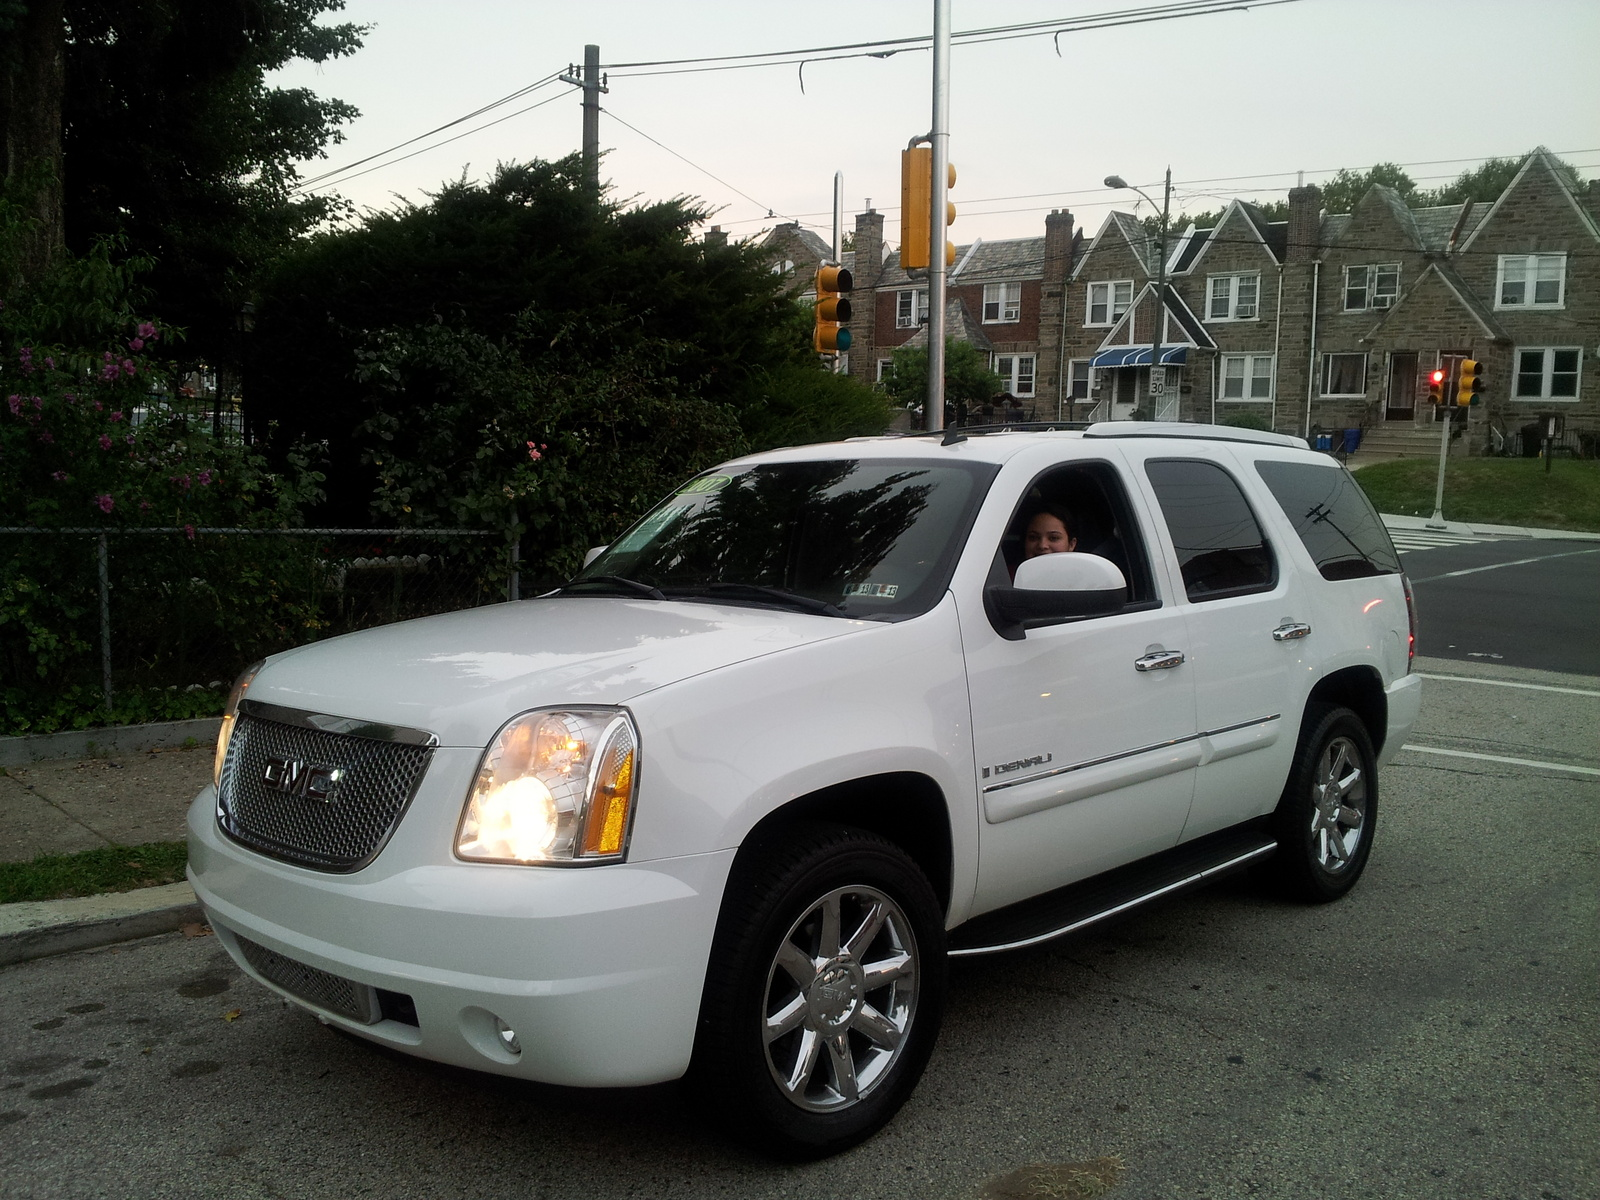 2007 chevy yukon reviews fender blacktop jazzmaster wiring diagram gmc denali pictures cargurus